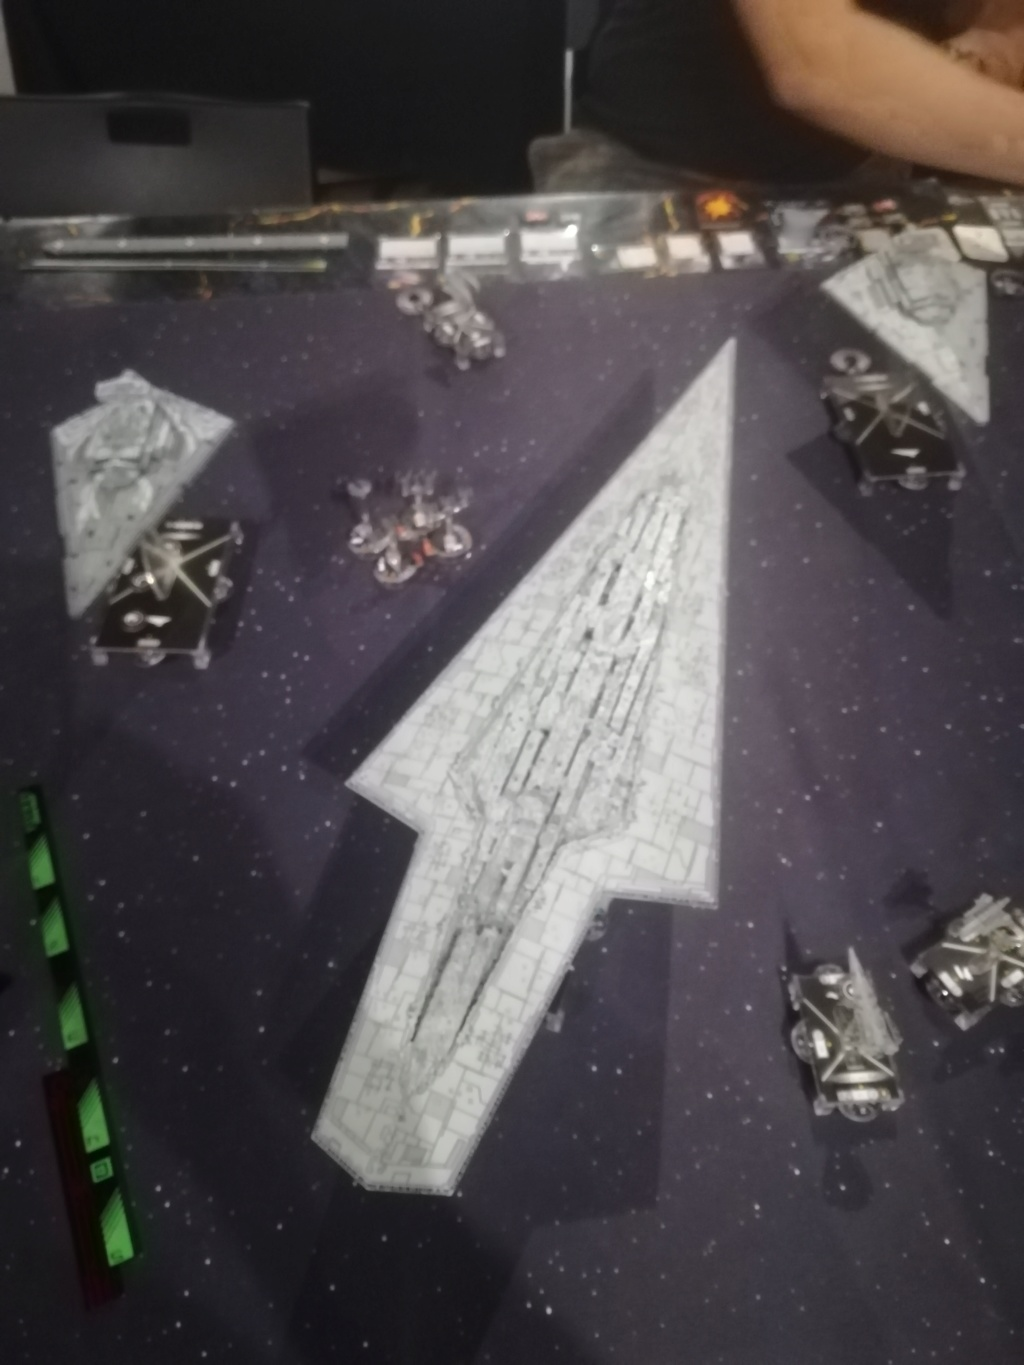 SSD Ravager vs Vader double Cymoon Img_2013